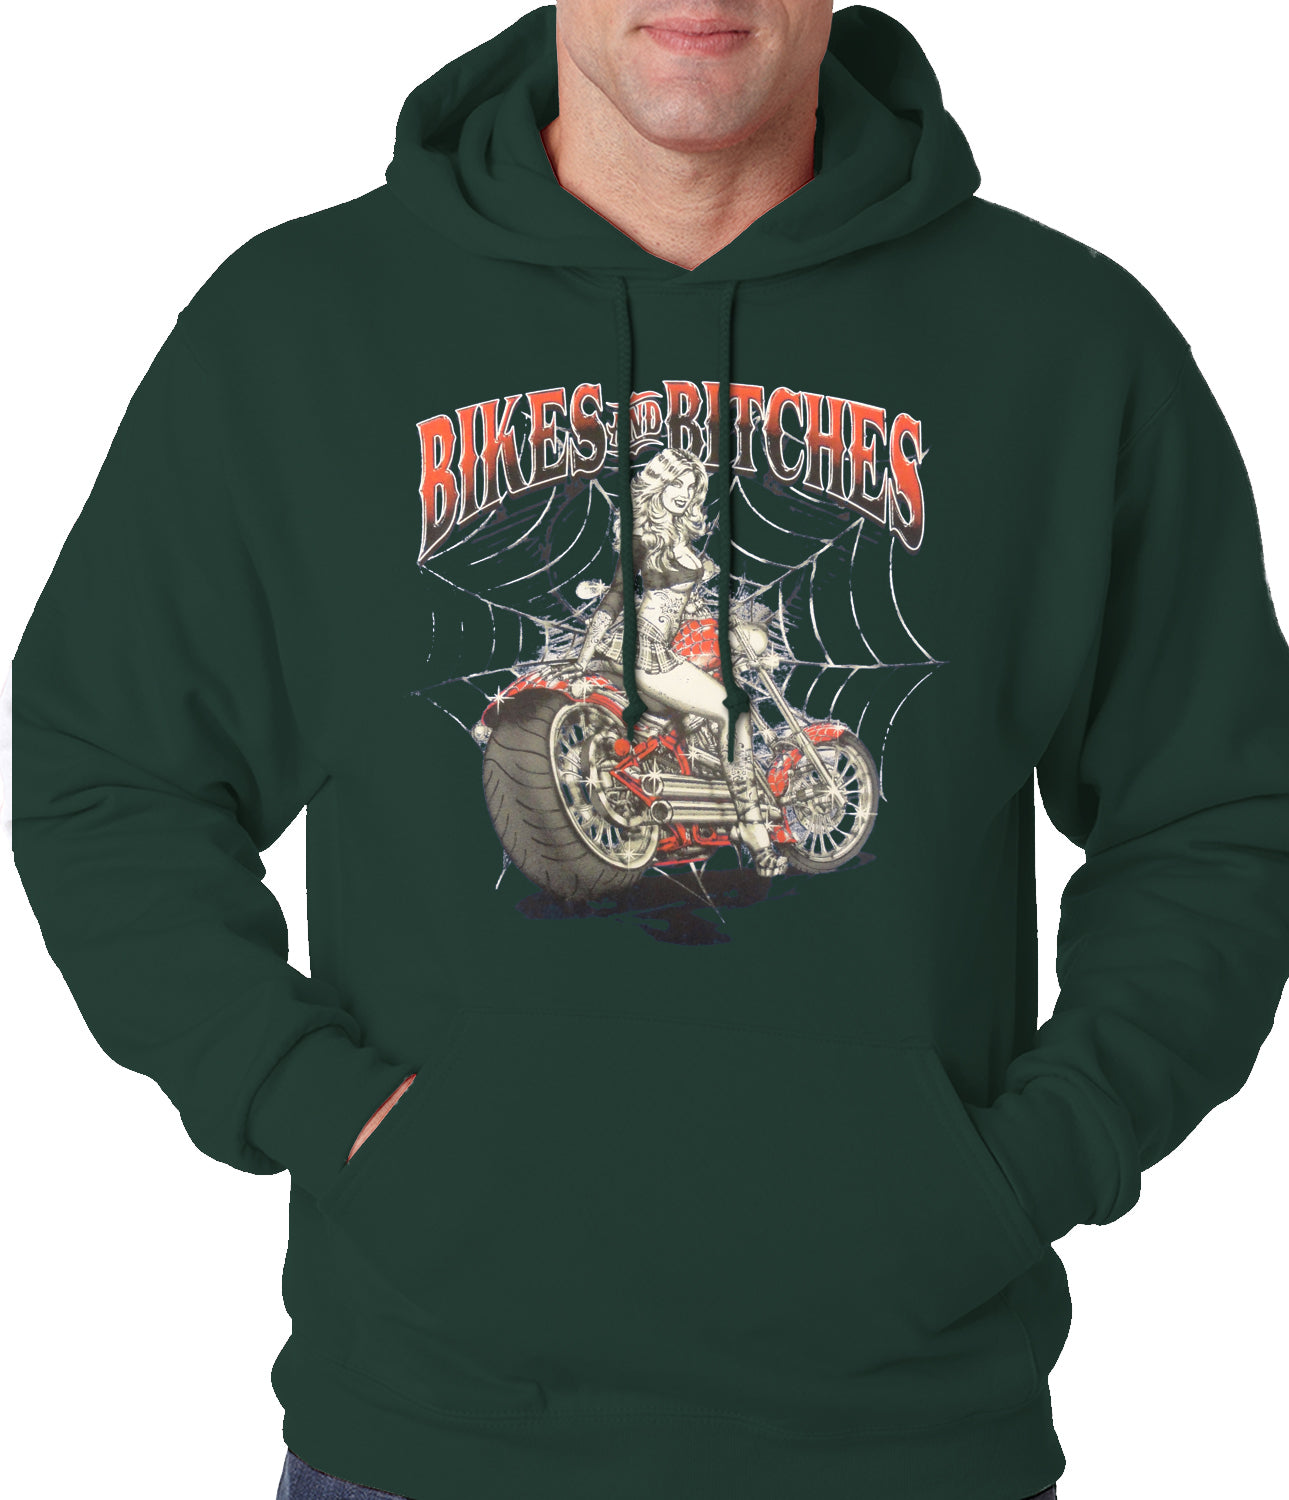 Bikes and B*tches Biker Adult Hoodie Forest Green